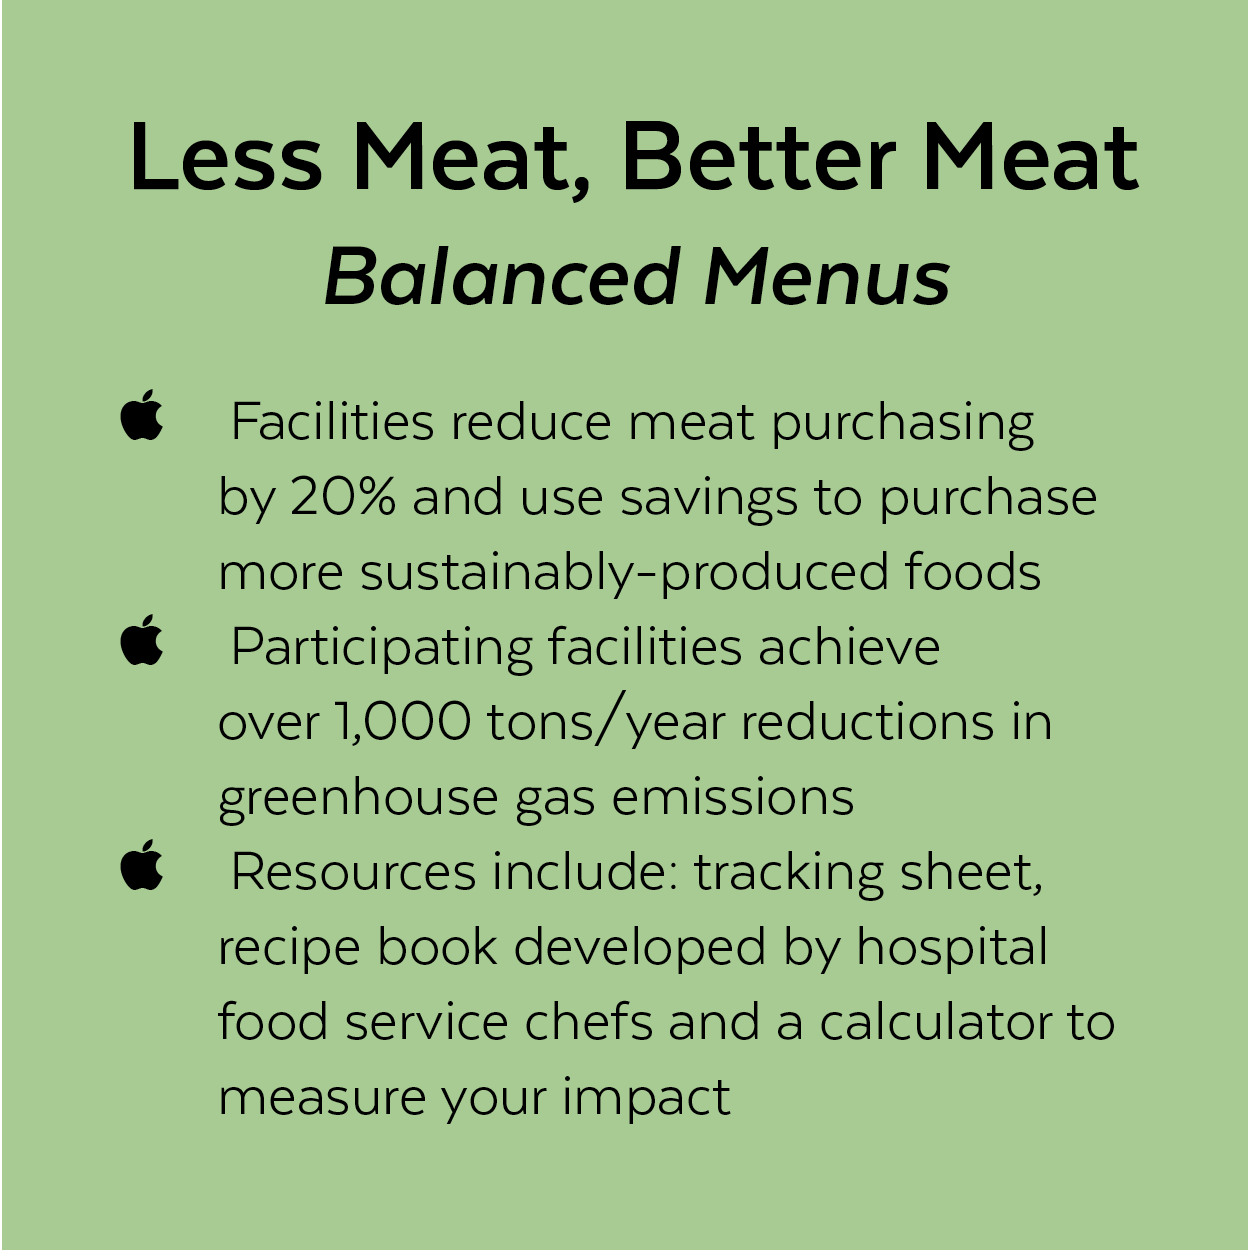 Less Meat, Better Meat sidebar